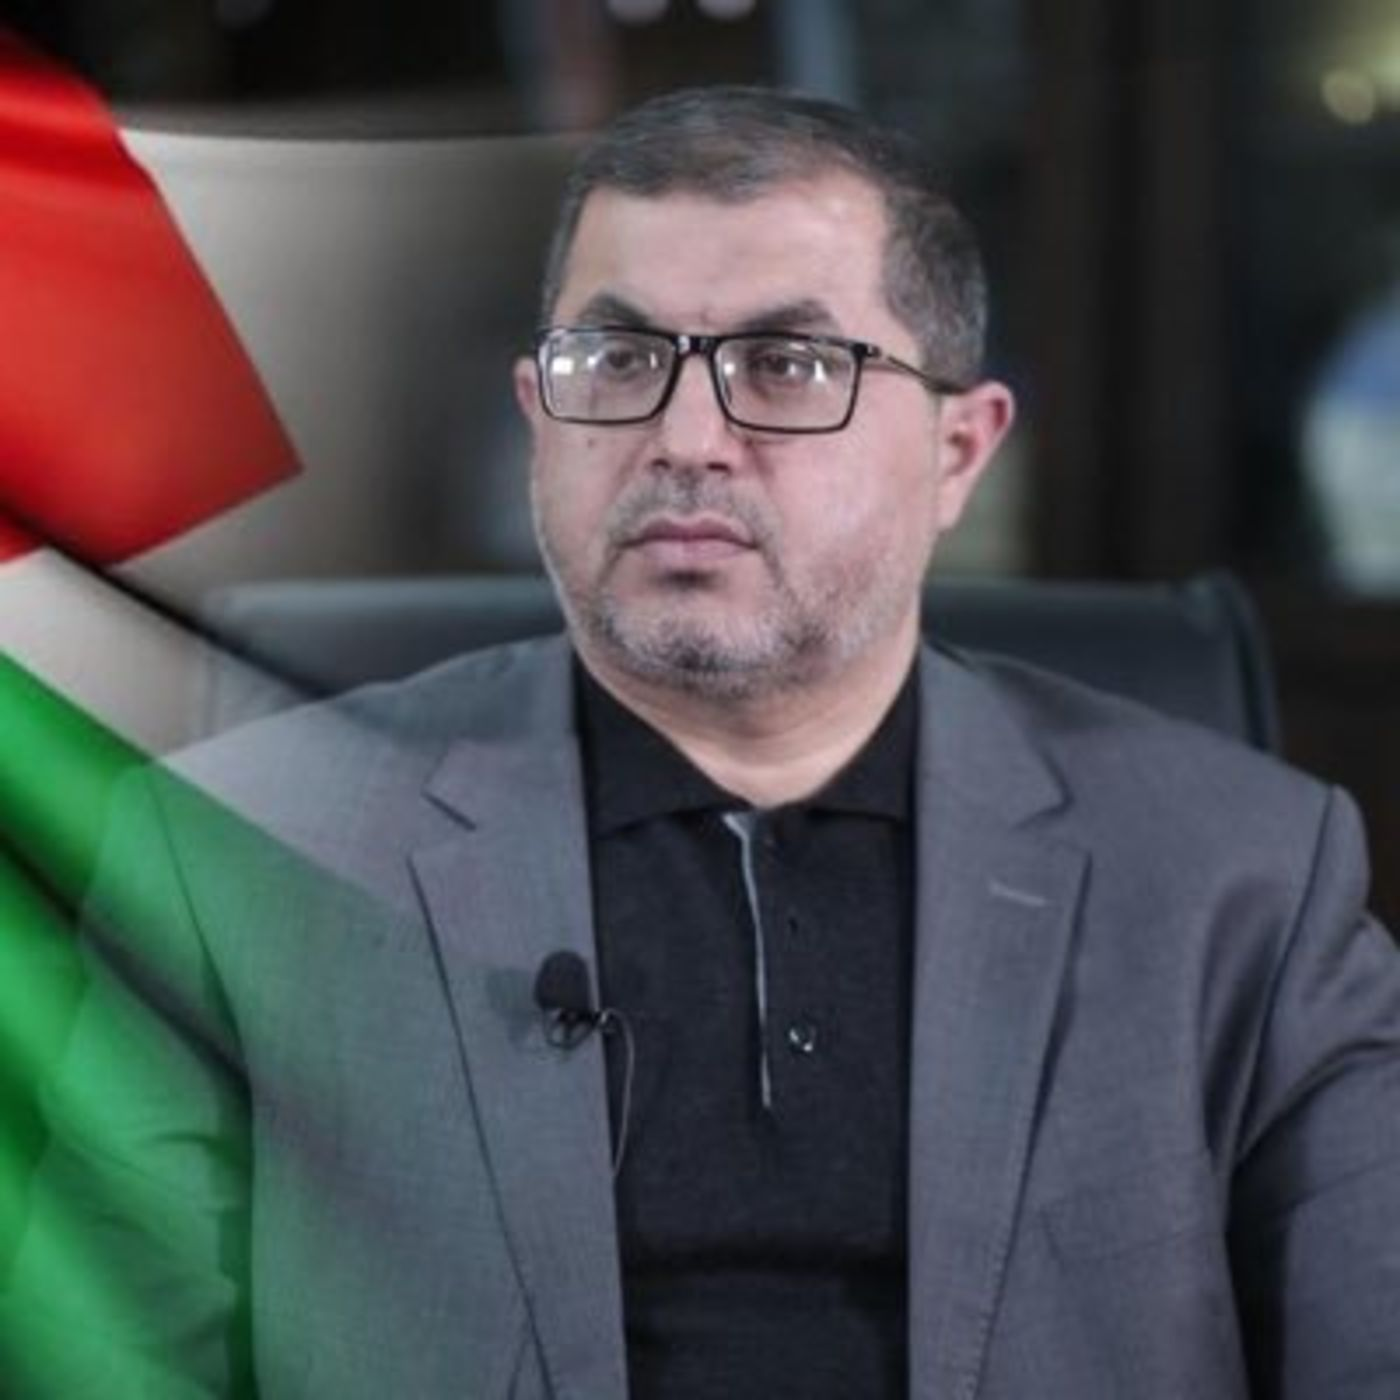 Gaza's Dr. Basem Naim on after-effects of Cast Lead and Great March of Return